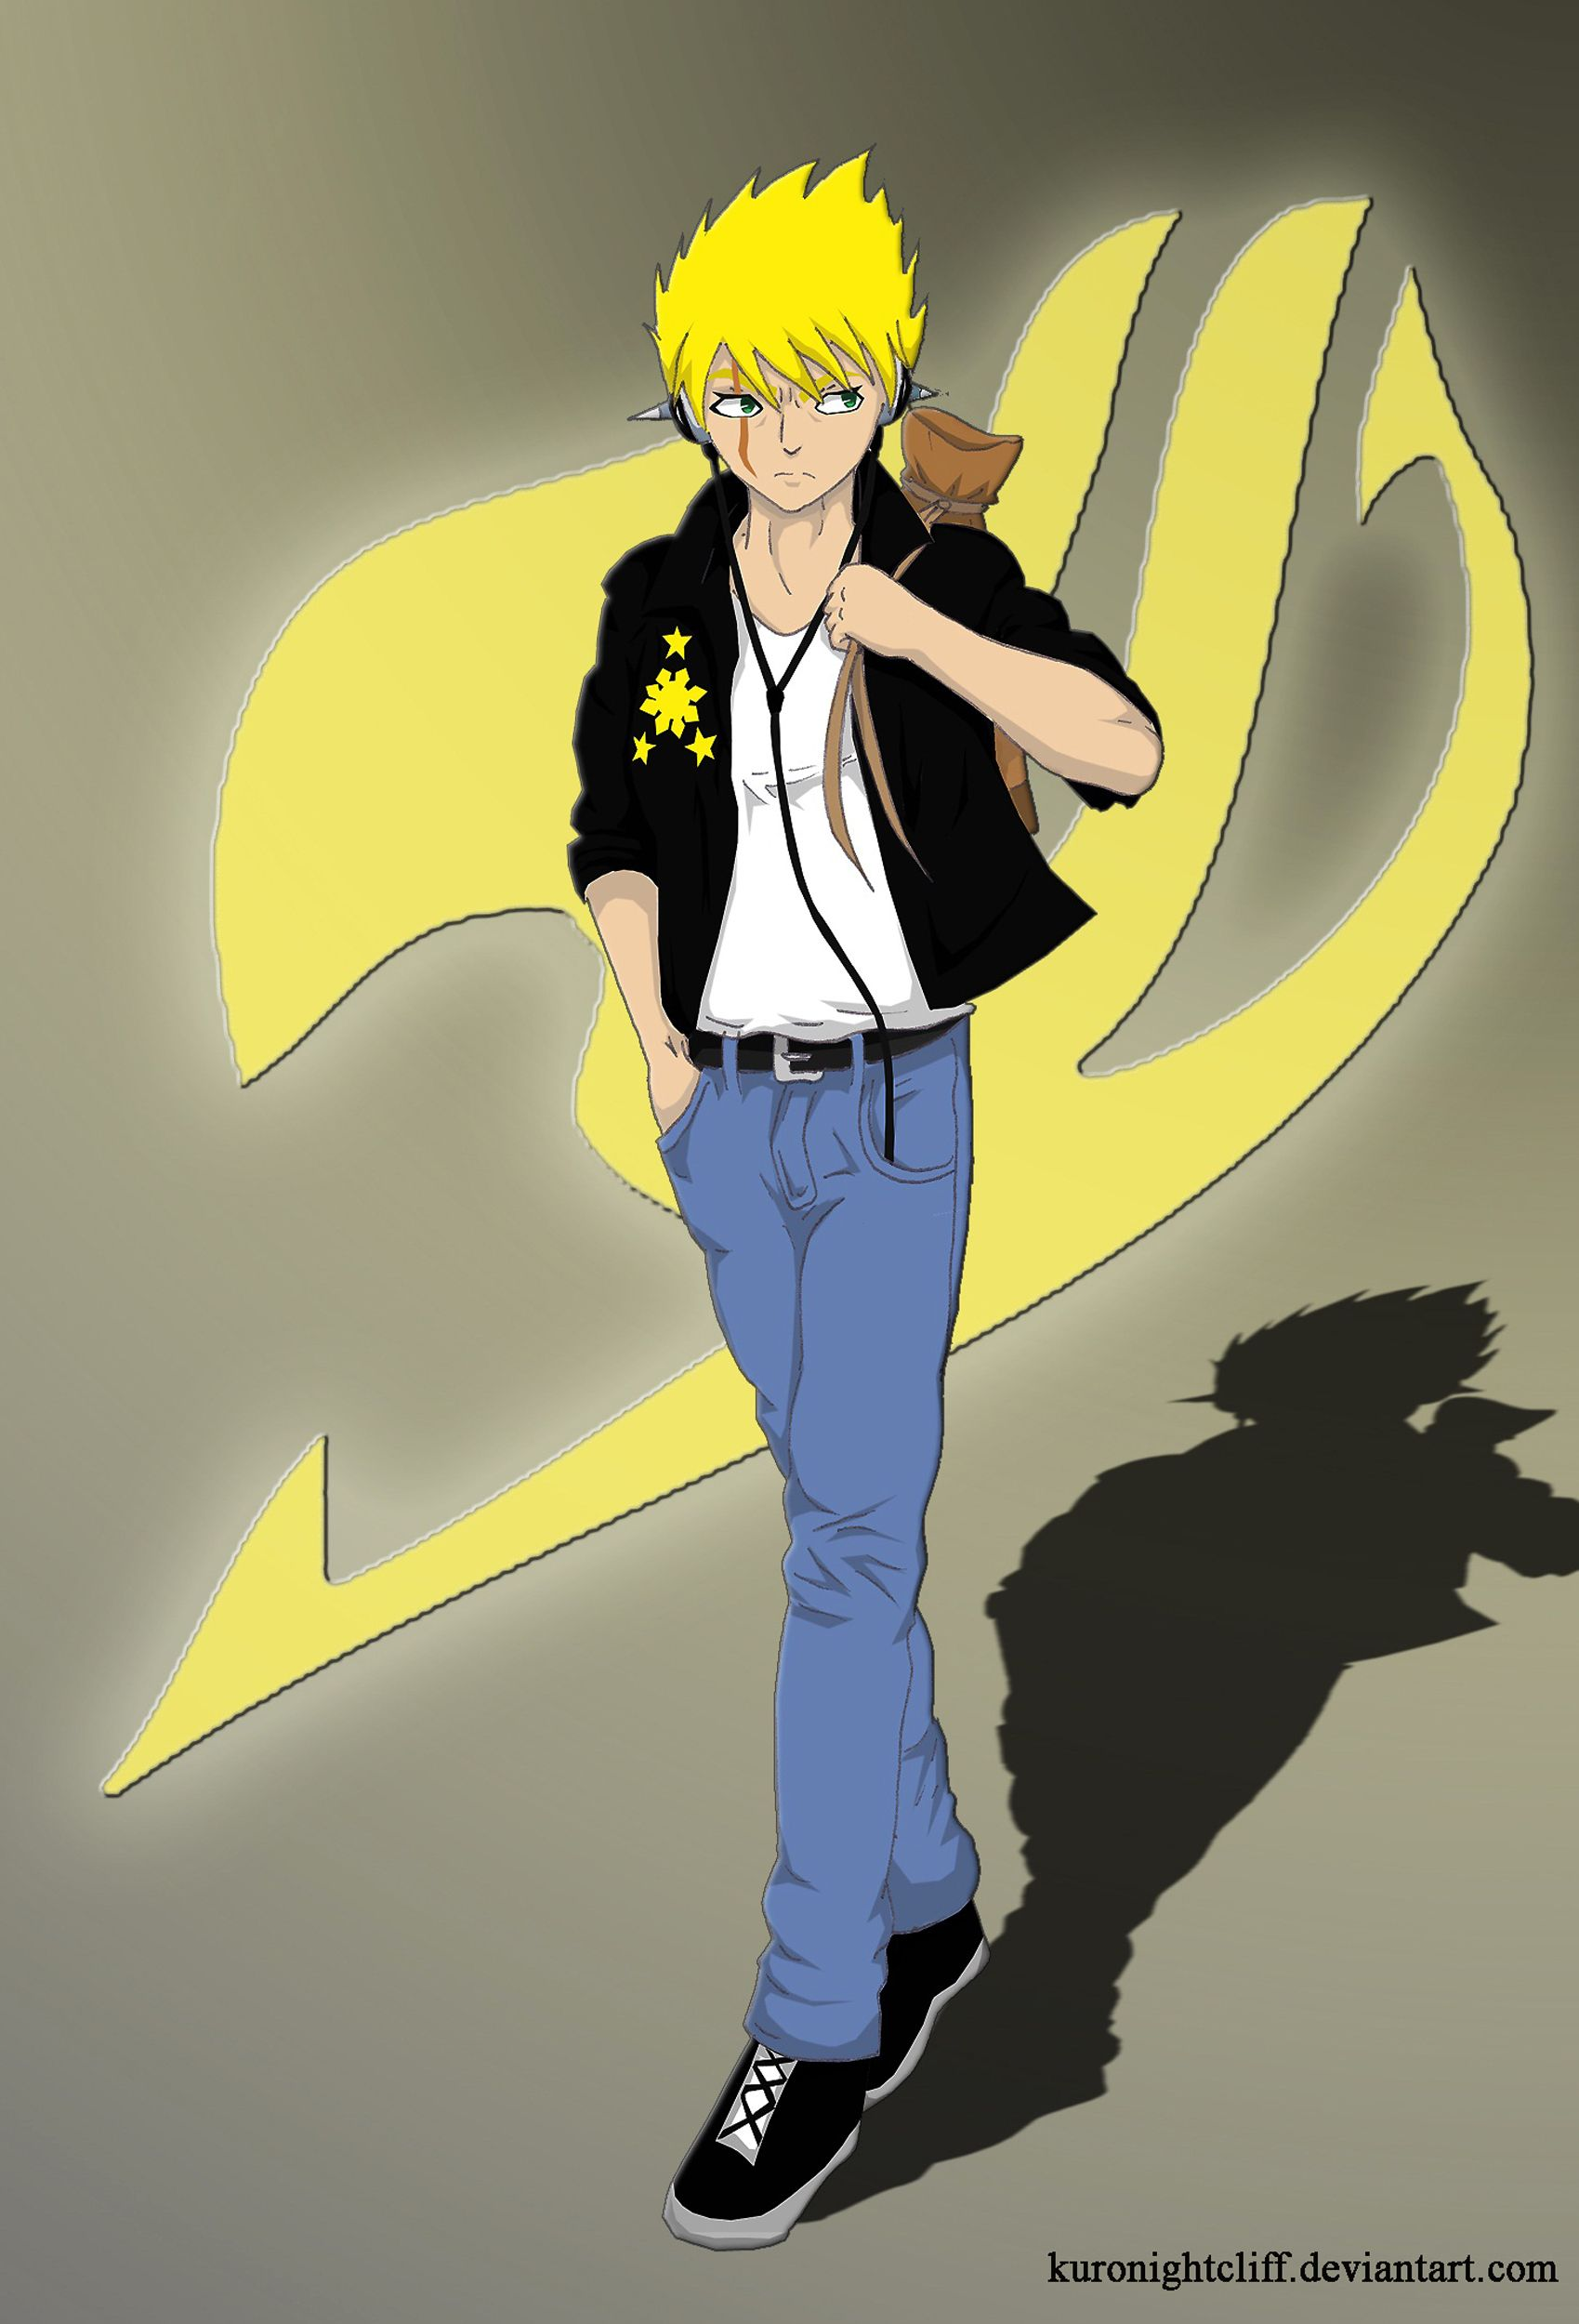 Laxus Dreyar from Fairy Tail | Nerd Stuff | Pinterest